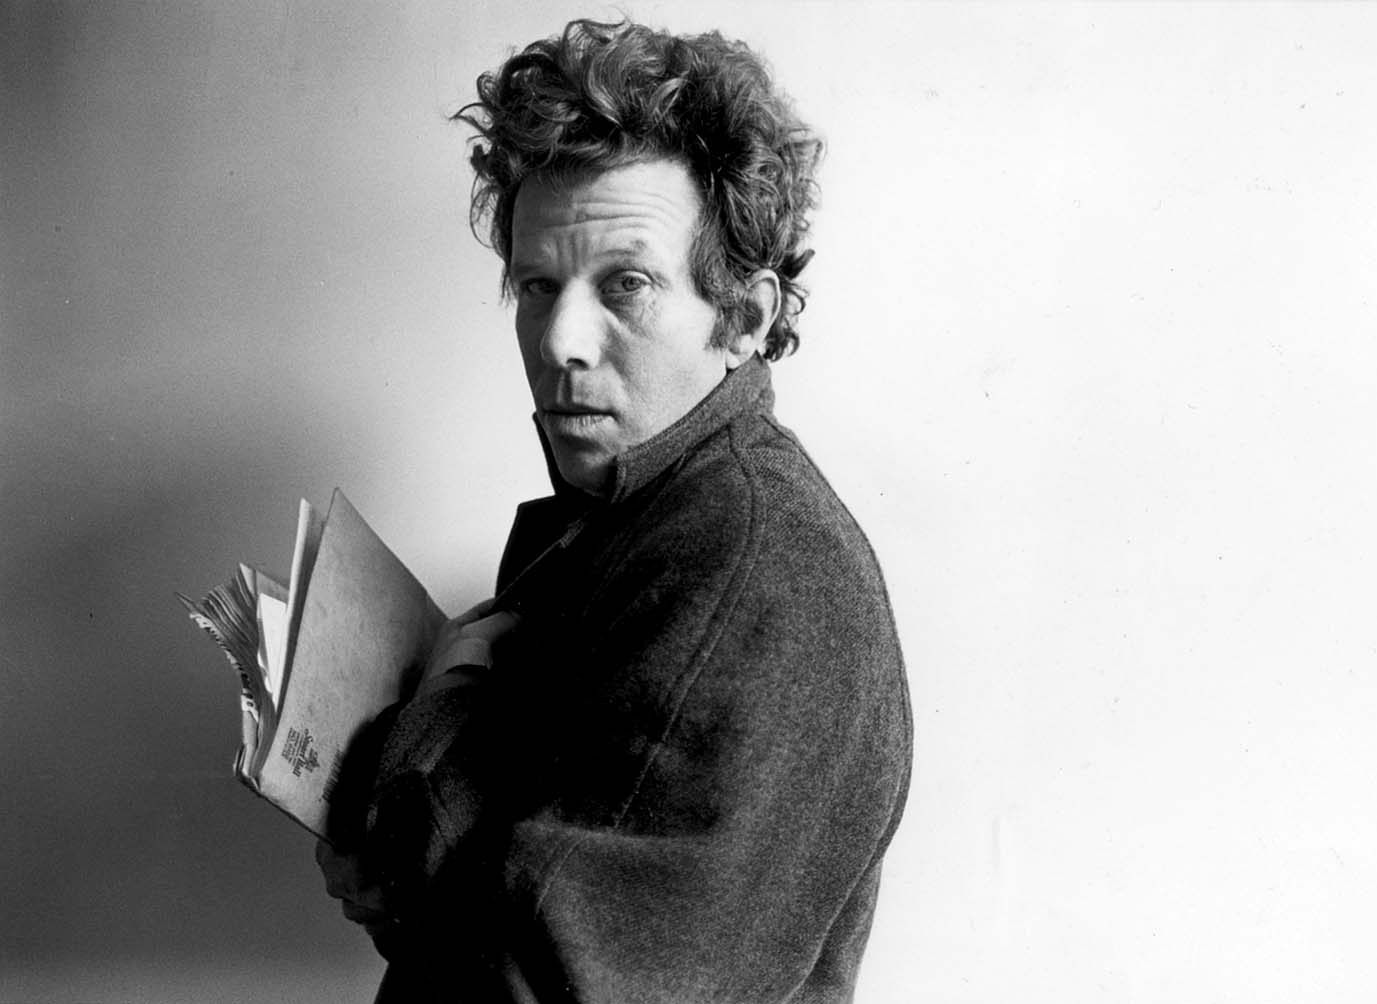 Tom waits lyrics part 1 photos pictures paroles letras text for tom waits lyrics part 1 photos pictures paroles letras text for every songs stopboris